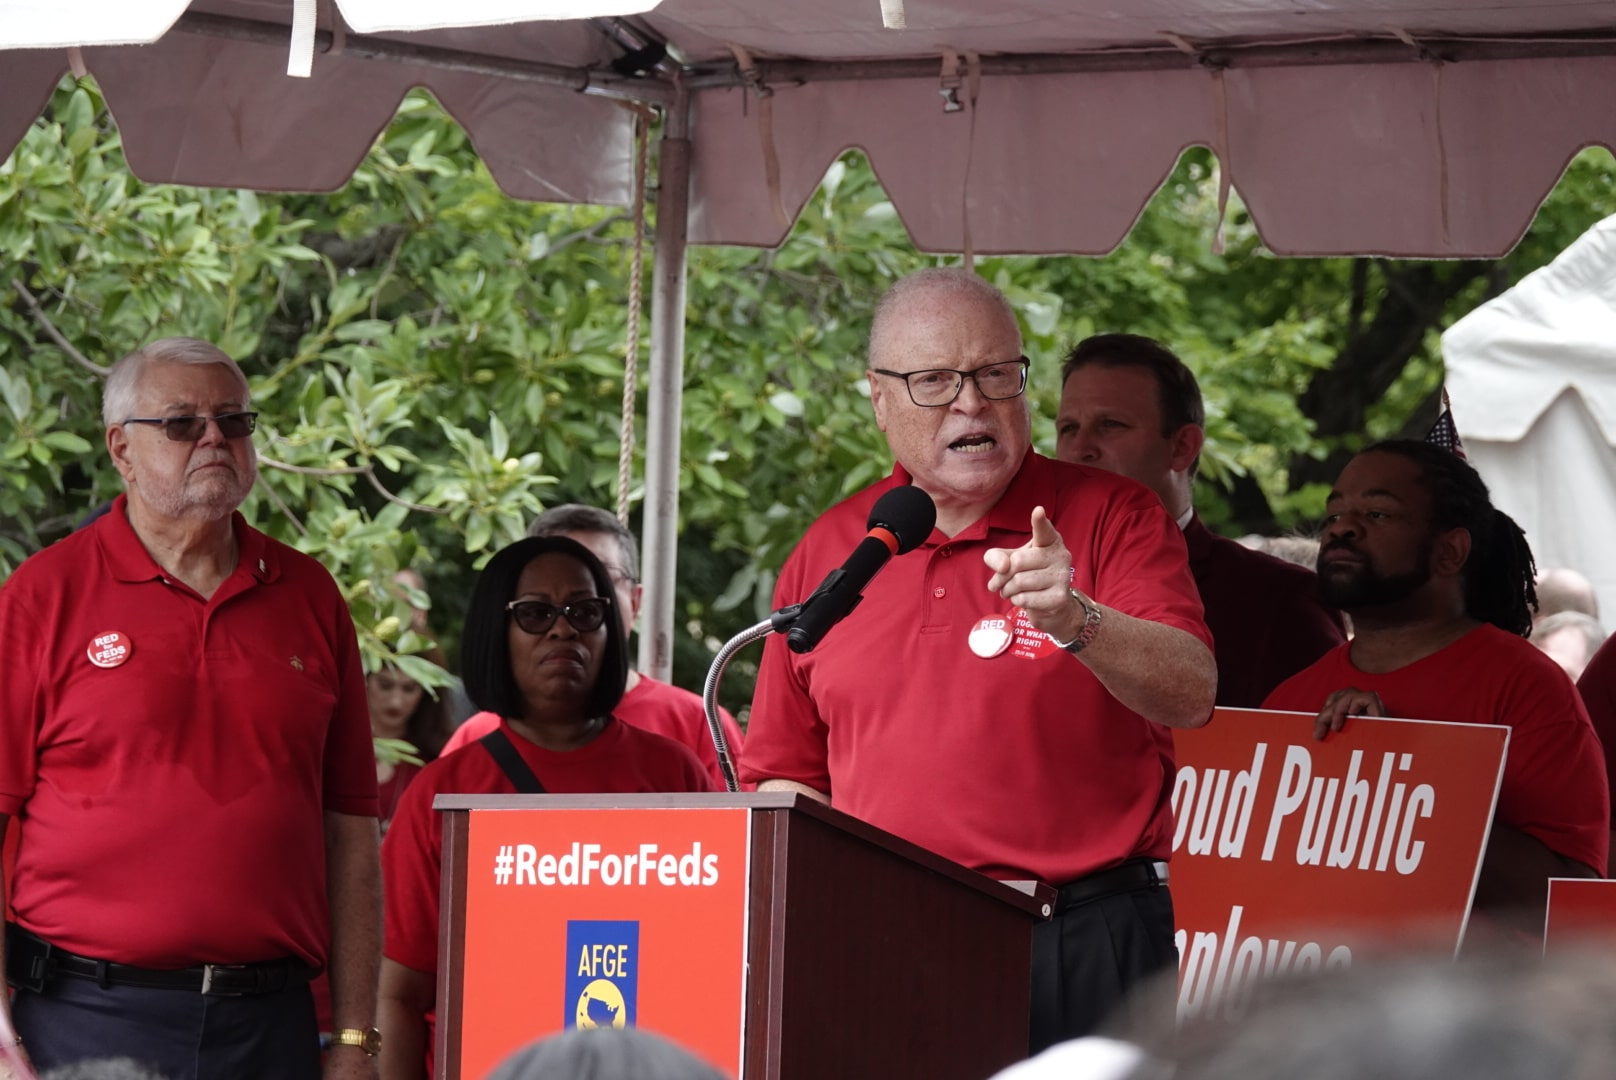 AFSCME President Lee Saunders speaking at a #RedForFeds rally